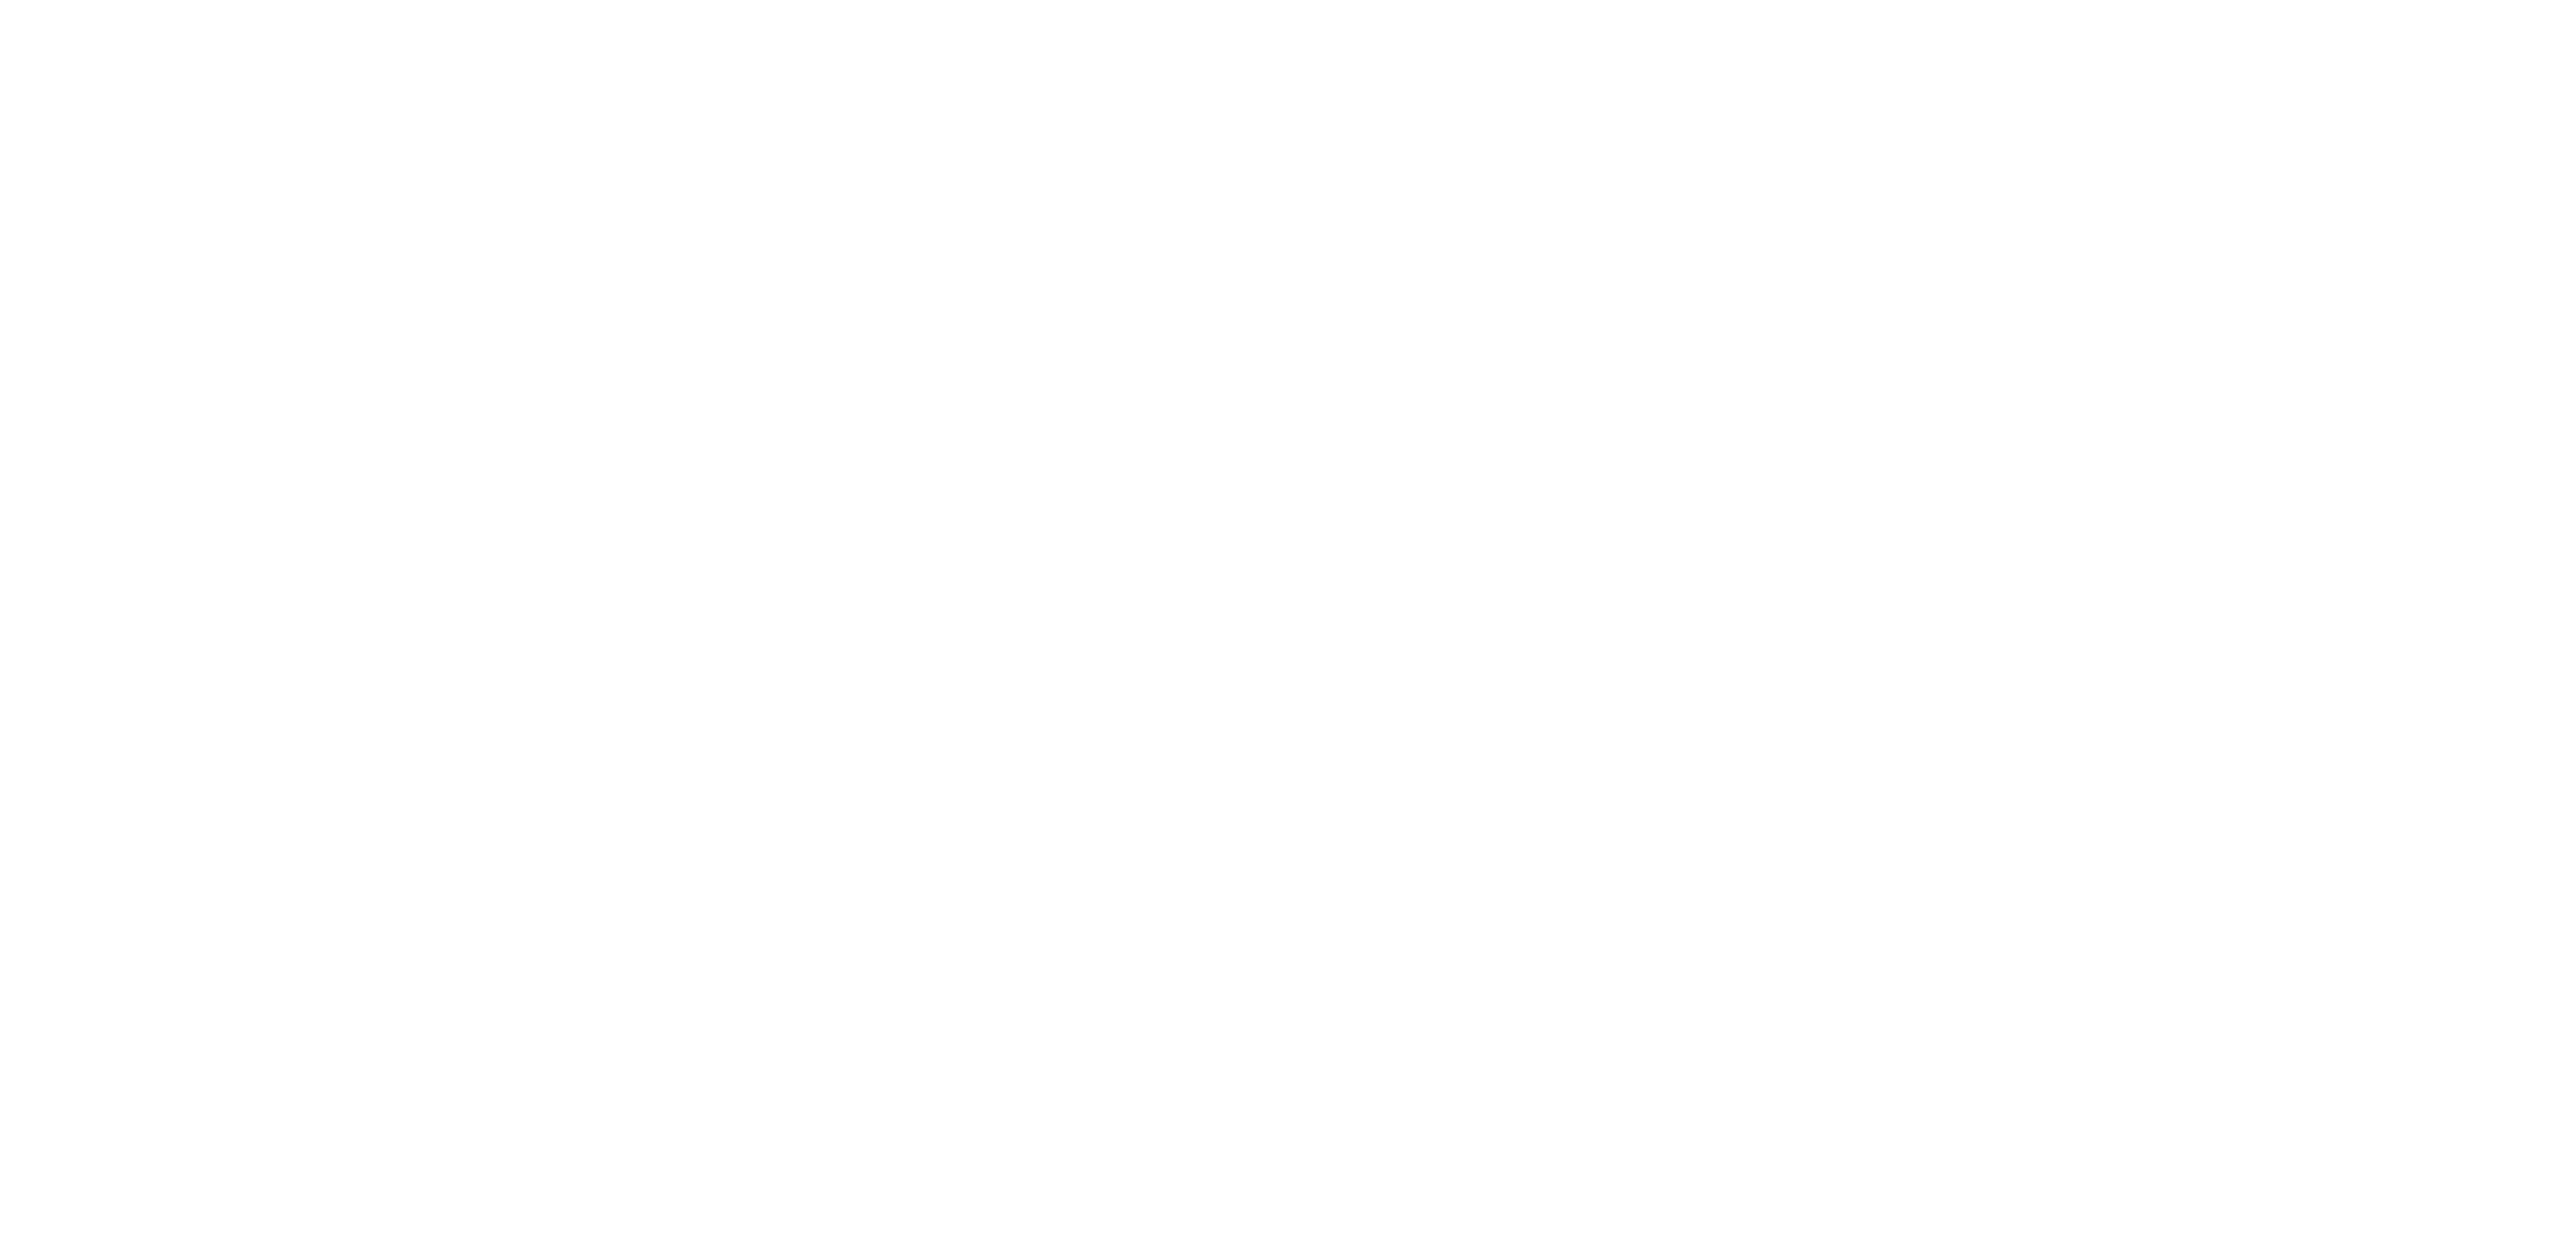 CA HI State Conference NAACP